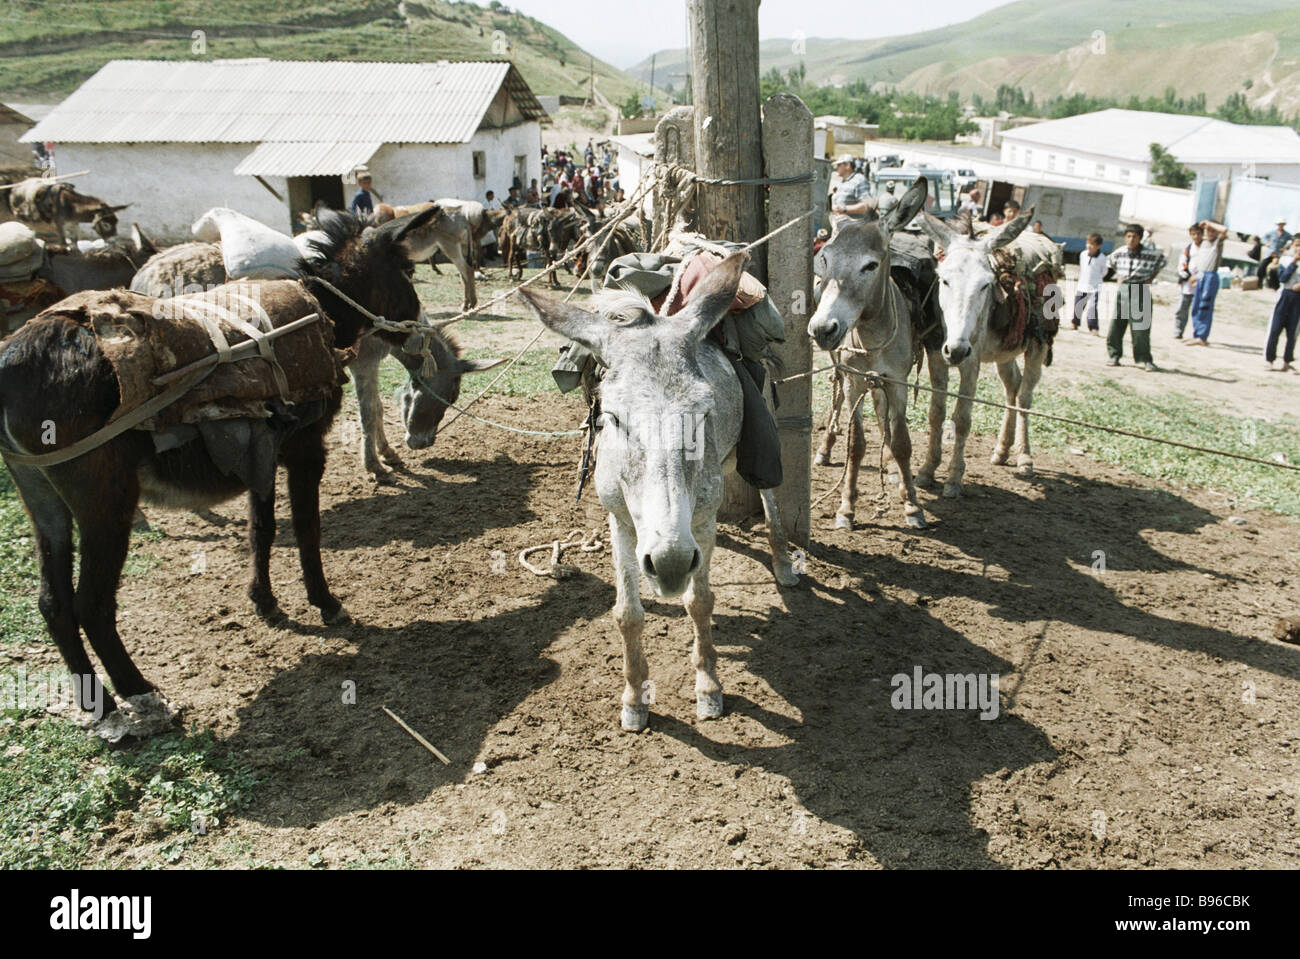 Donkeys tied to a post in the marketplace of a mountain village - Stock Image